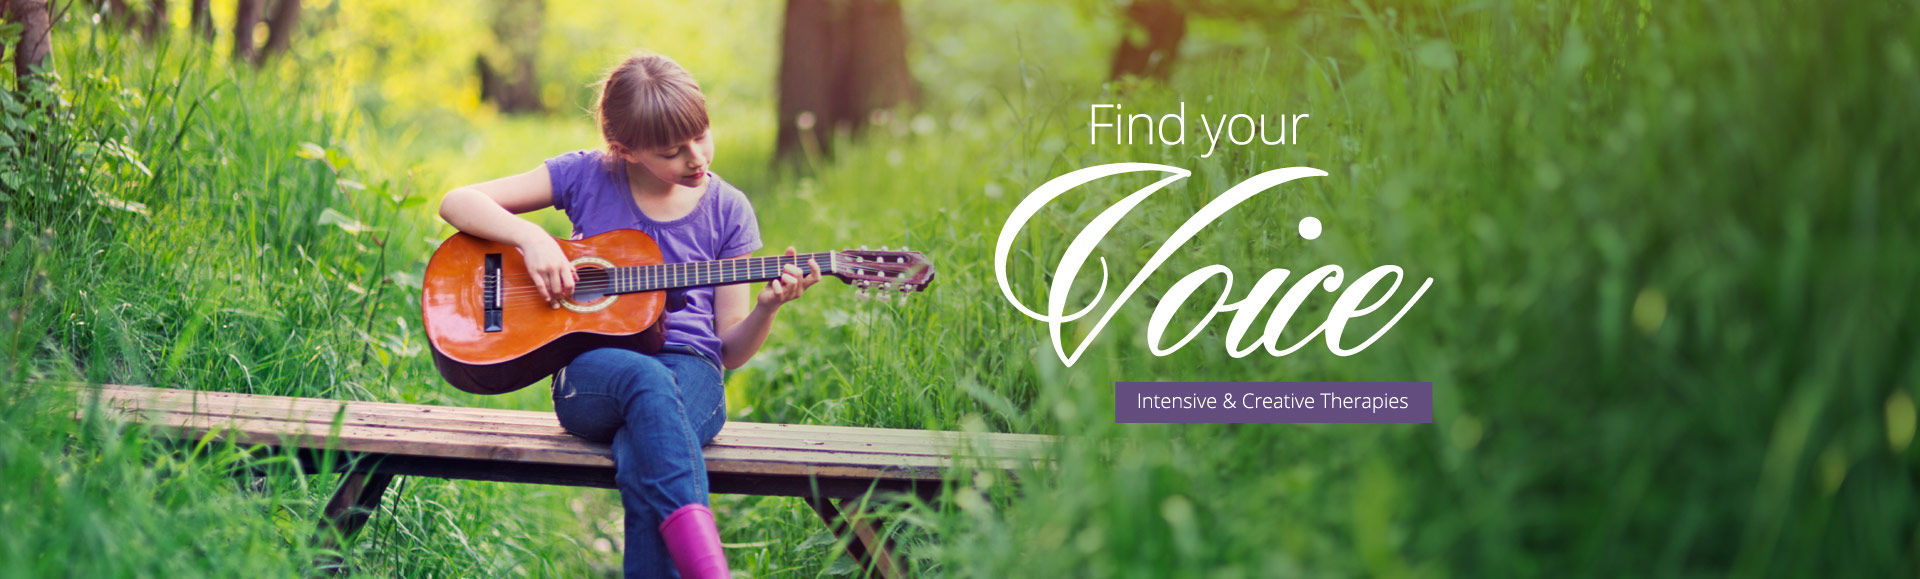 Find your voice with music therapy.